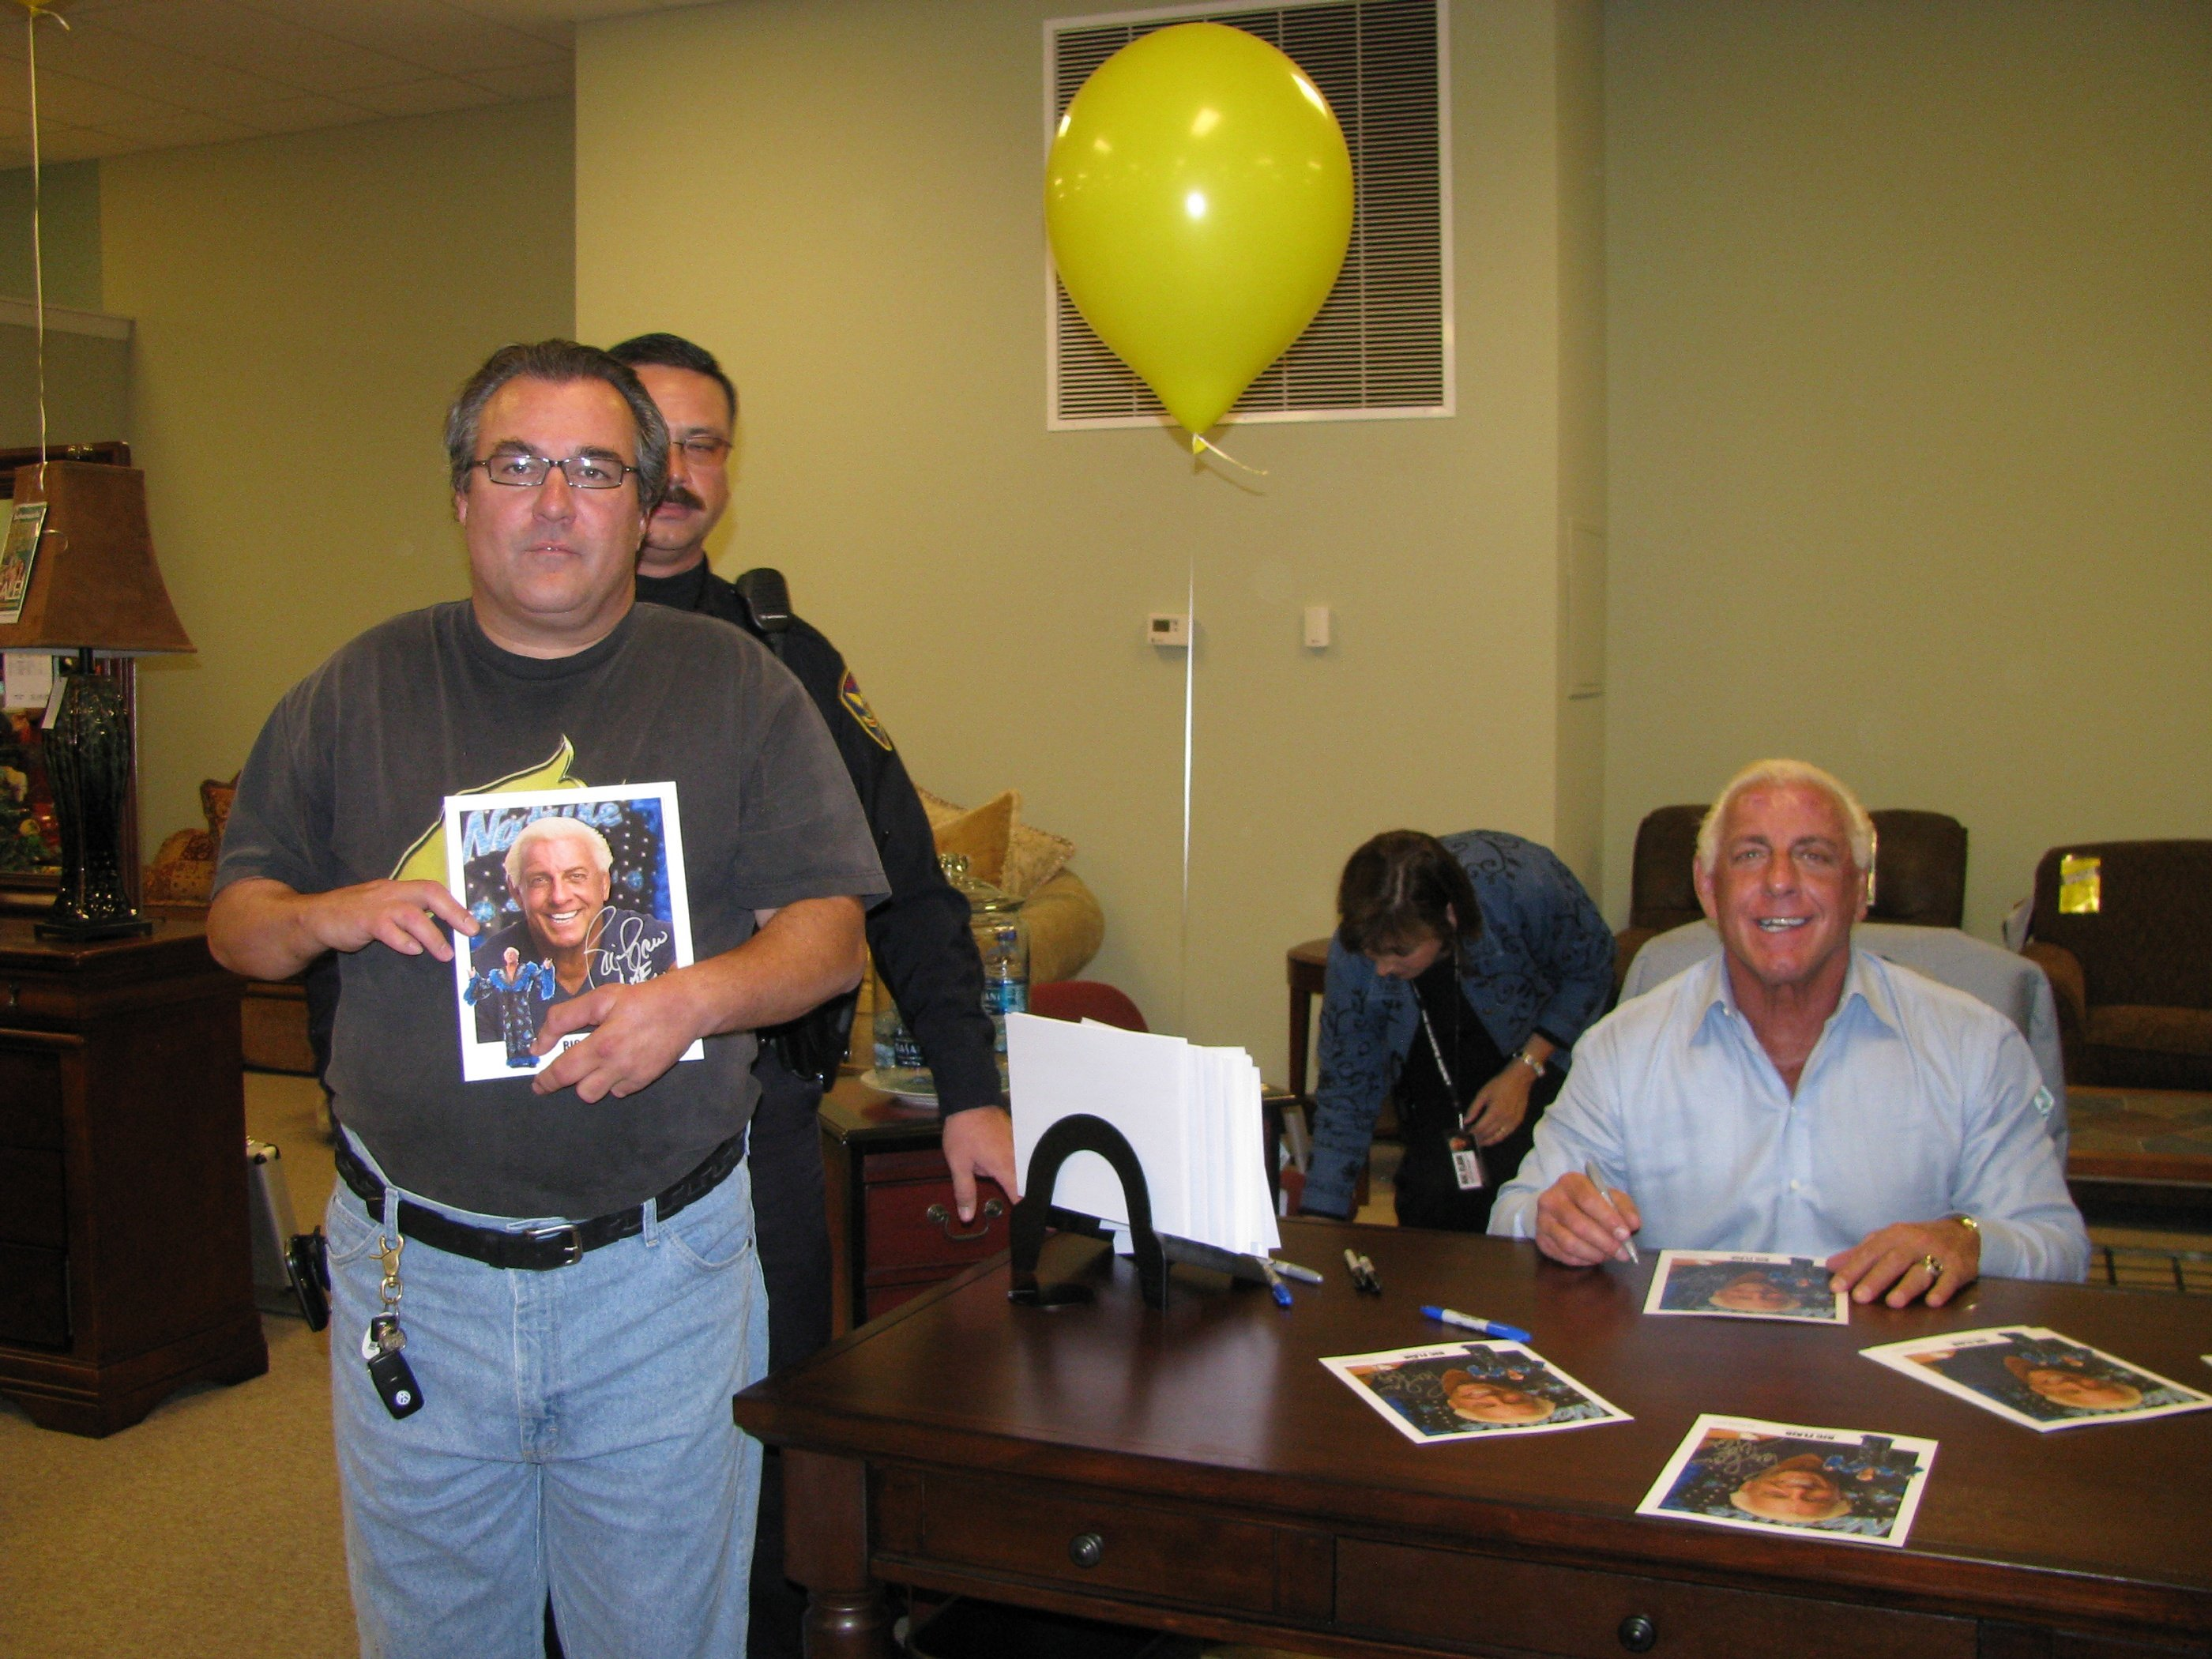 My good friend Joey is with Ric Flair but he is thinking about the Oak Ridge Boys Elvira and Bobby Sue  lol